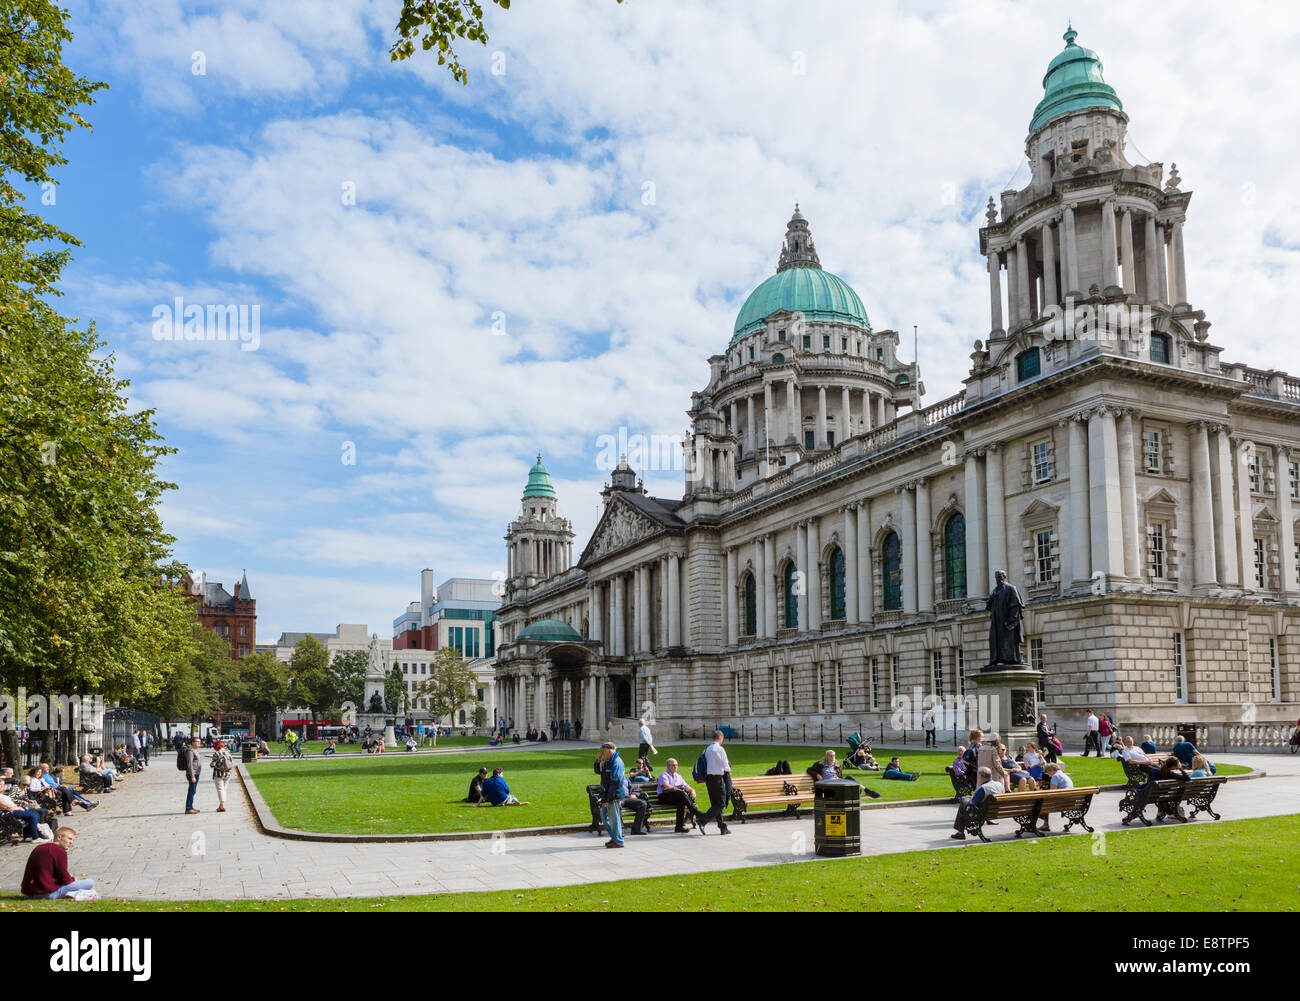 Belfast City Hall, Donegall Square, Belfast, Northern Ireland, UK - Stock Image